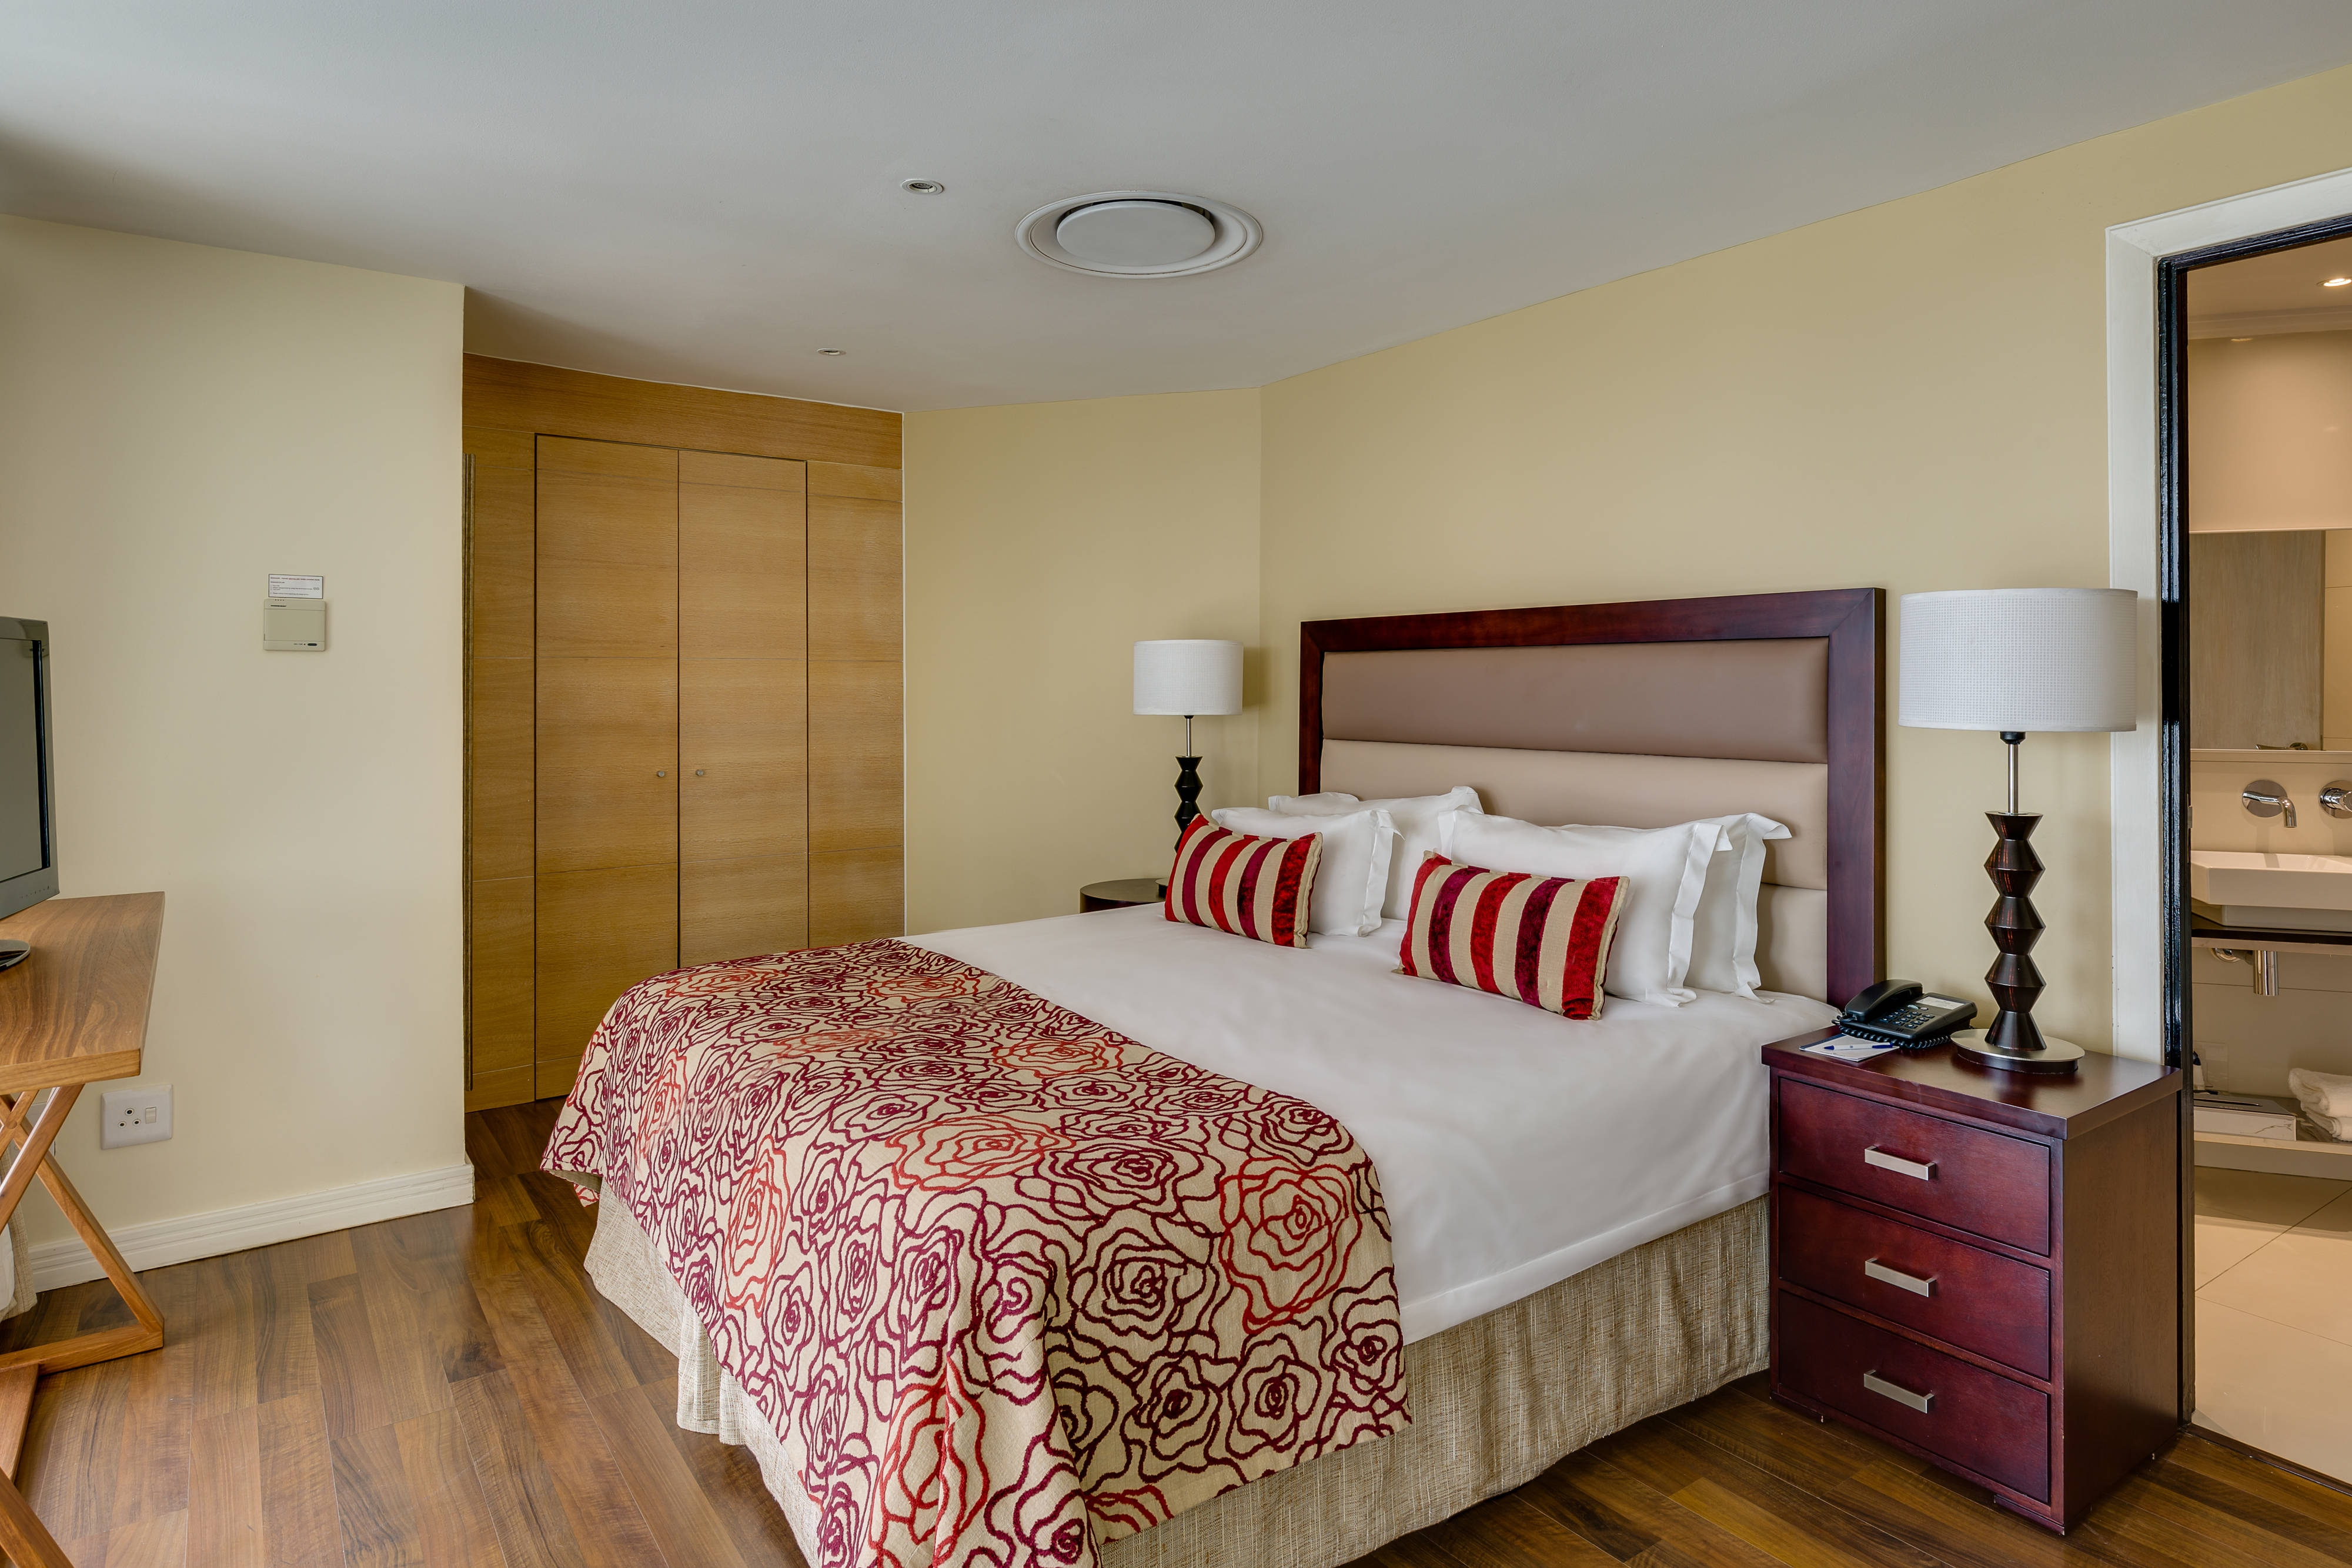 Penthouse accommodation, upstairs bedroom